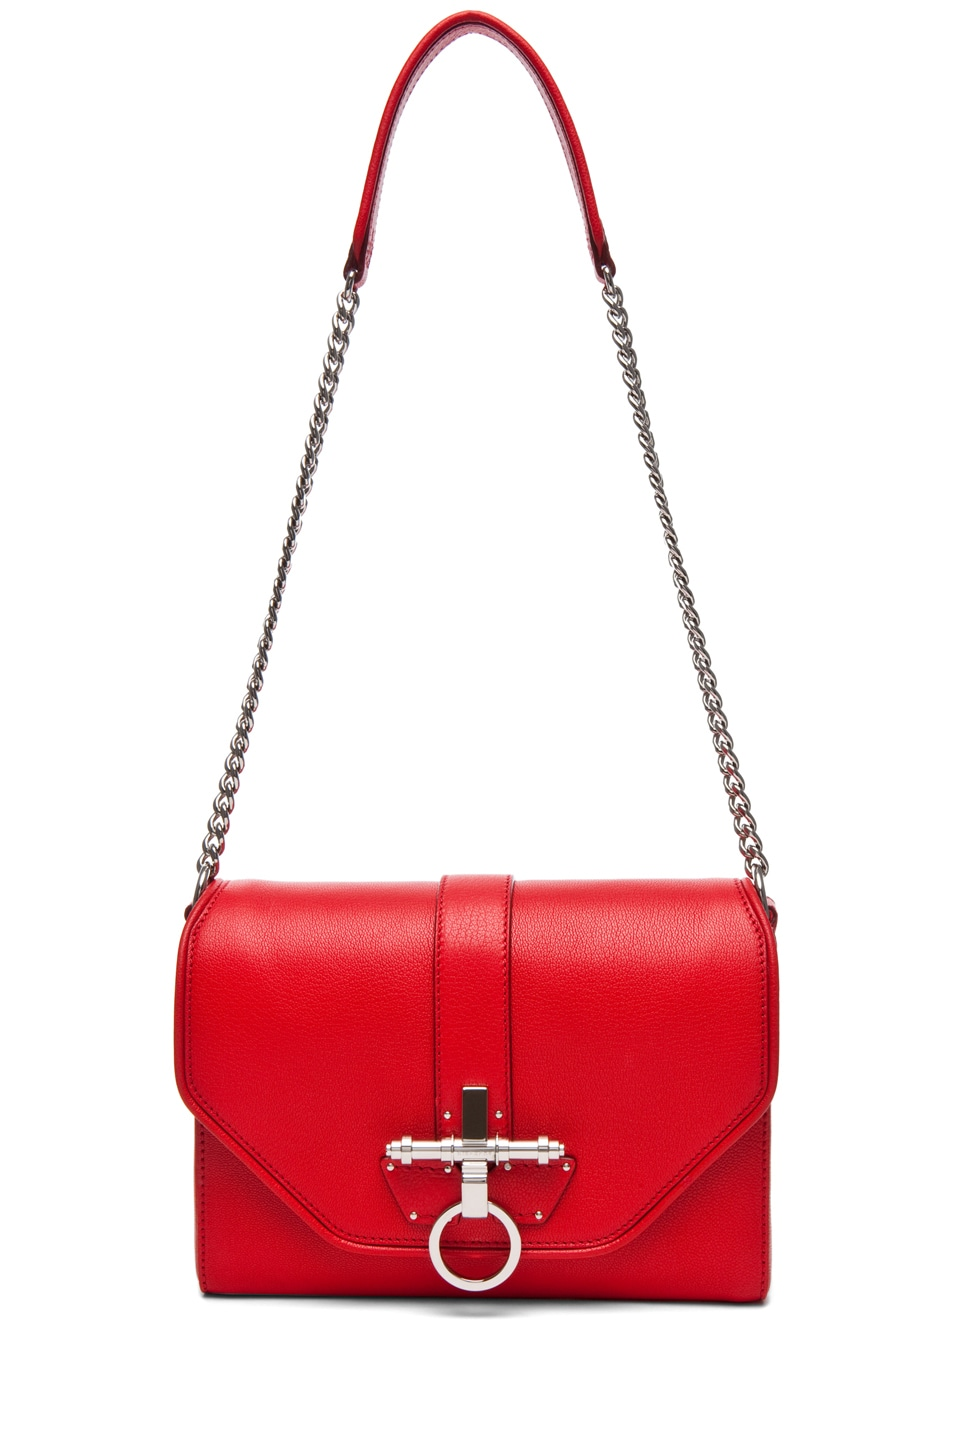 bea5dbcef769 Image 5 of Givenchy Obsedia with Chain in Red